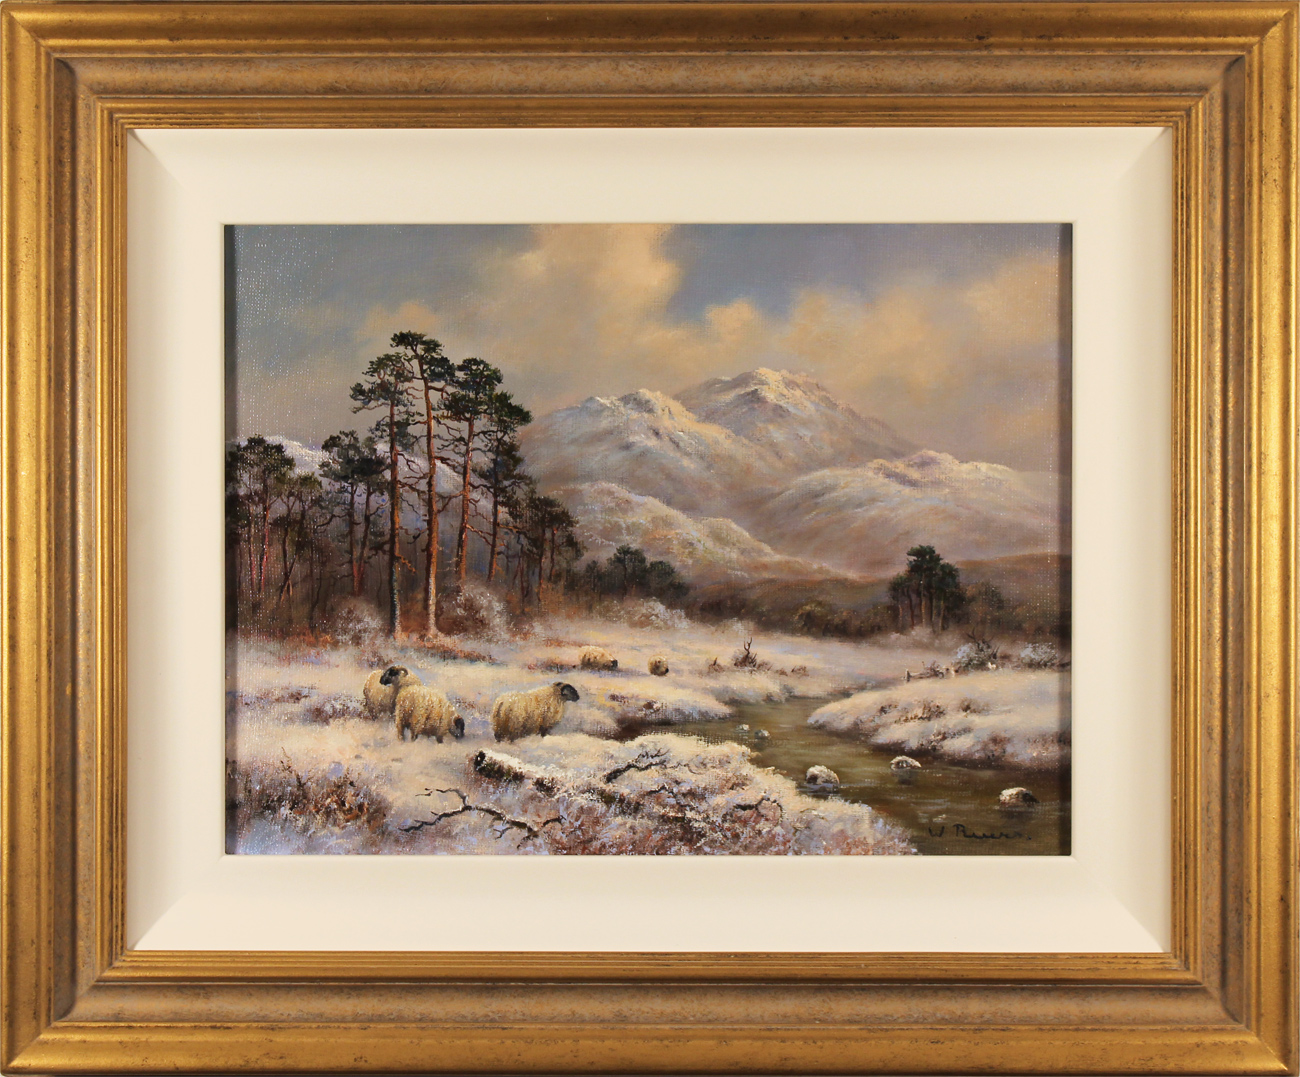 Wendy Reeves, Original oil painting on canvas, Winter in the Scottish Highlands. Click to enlarge